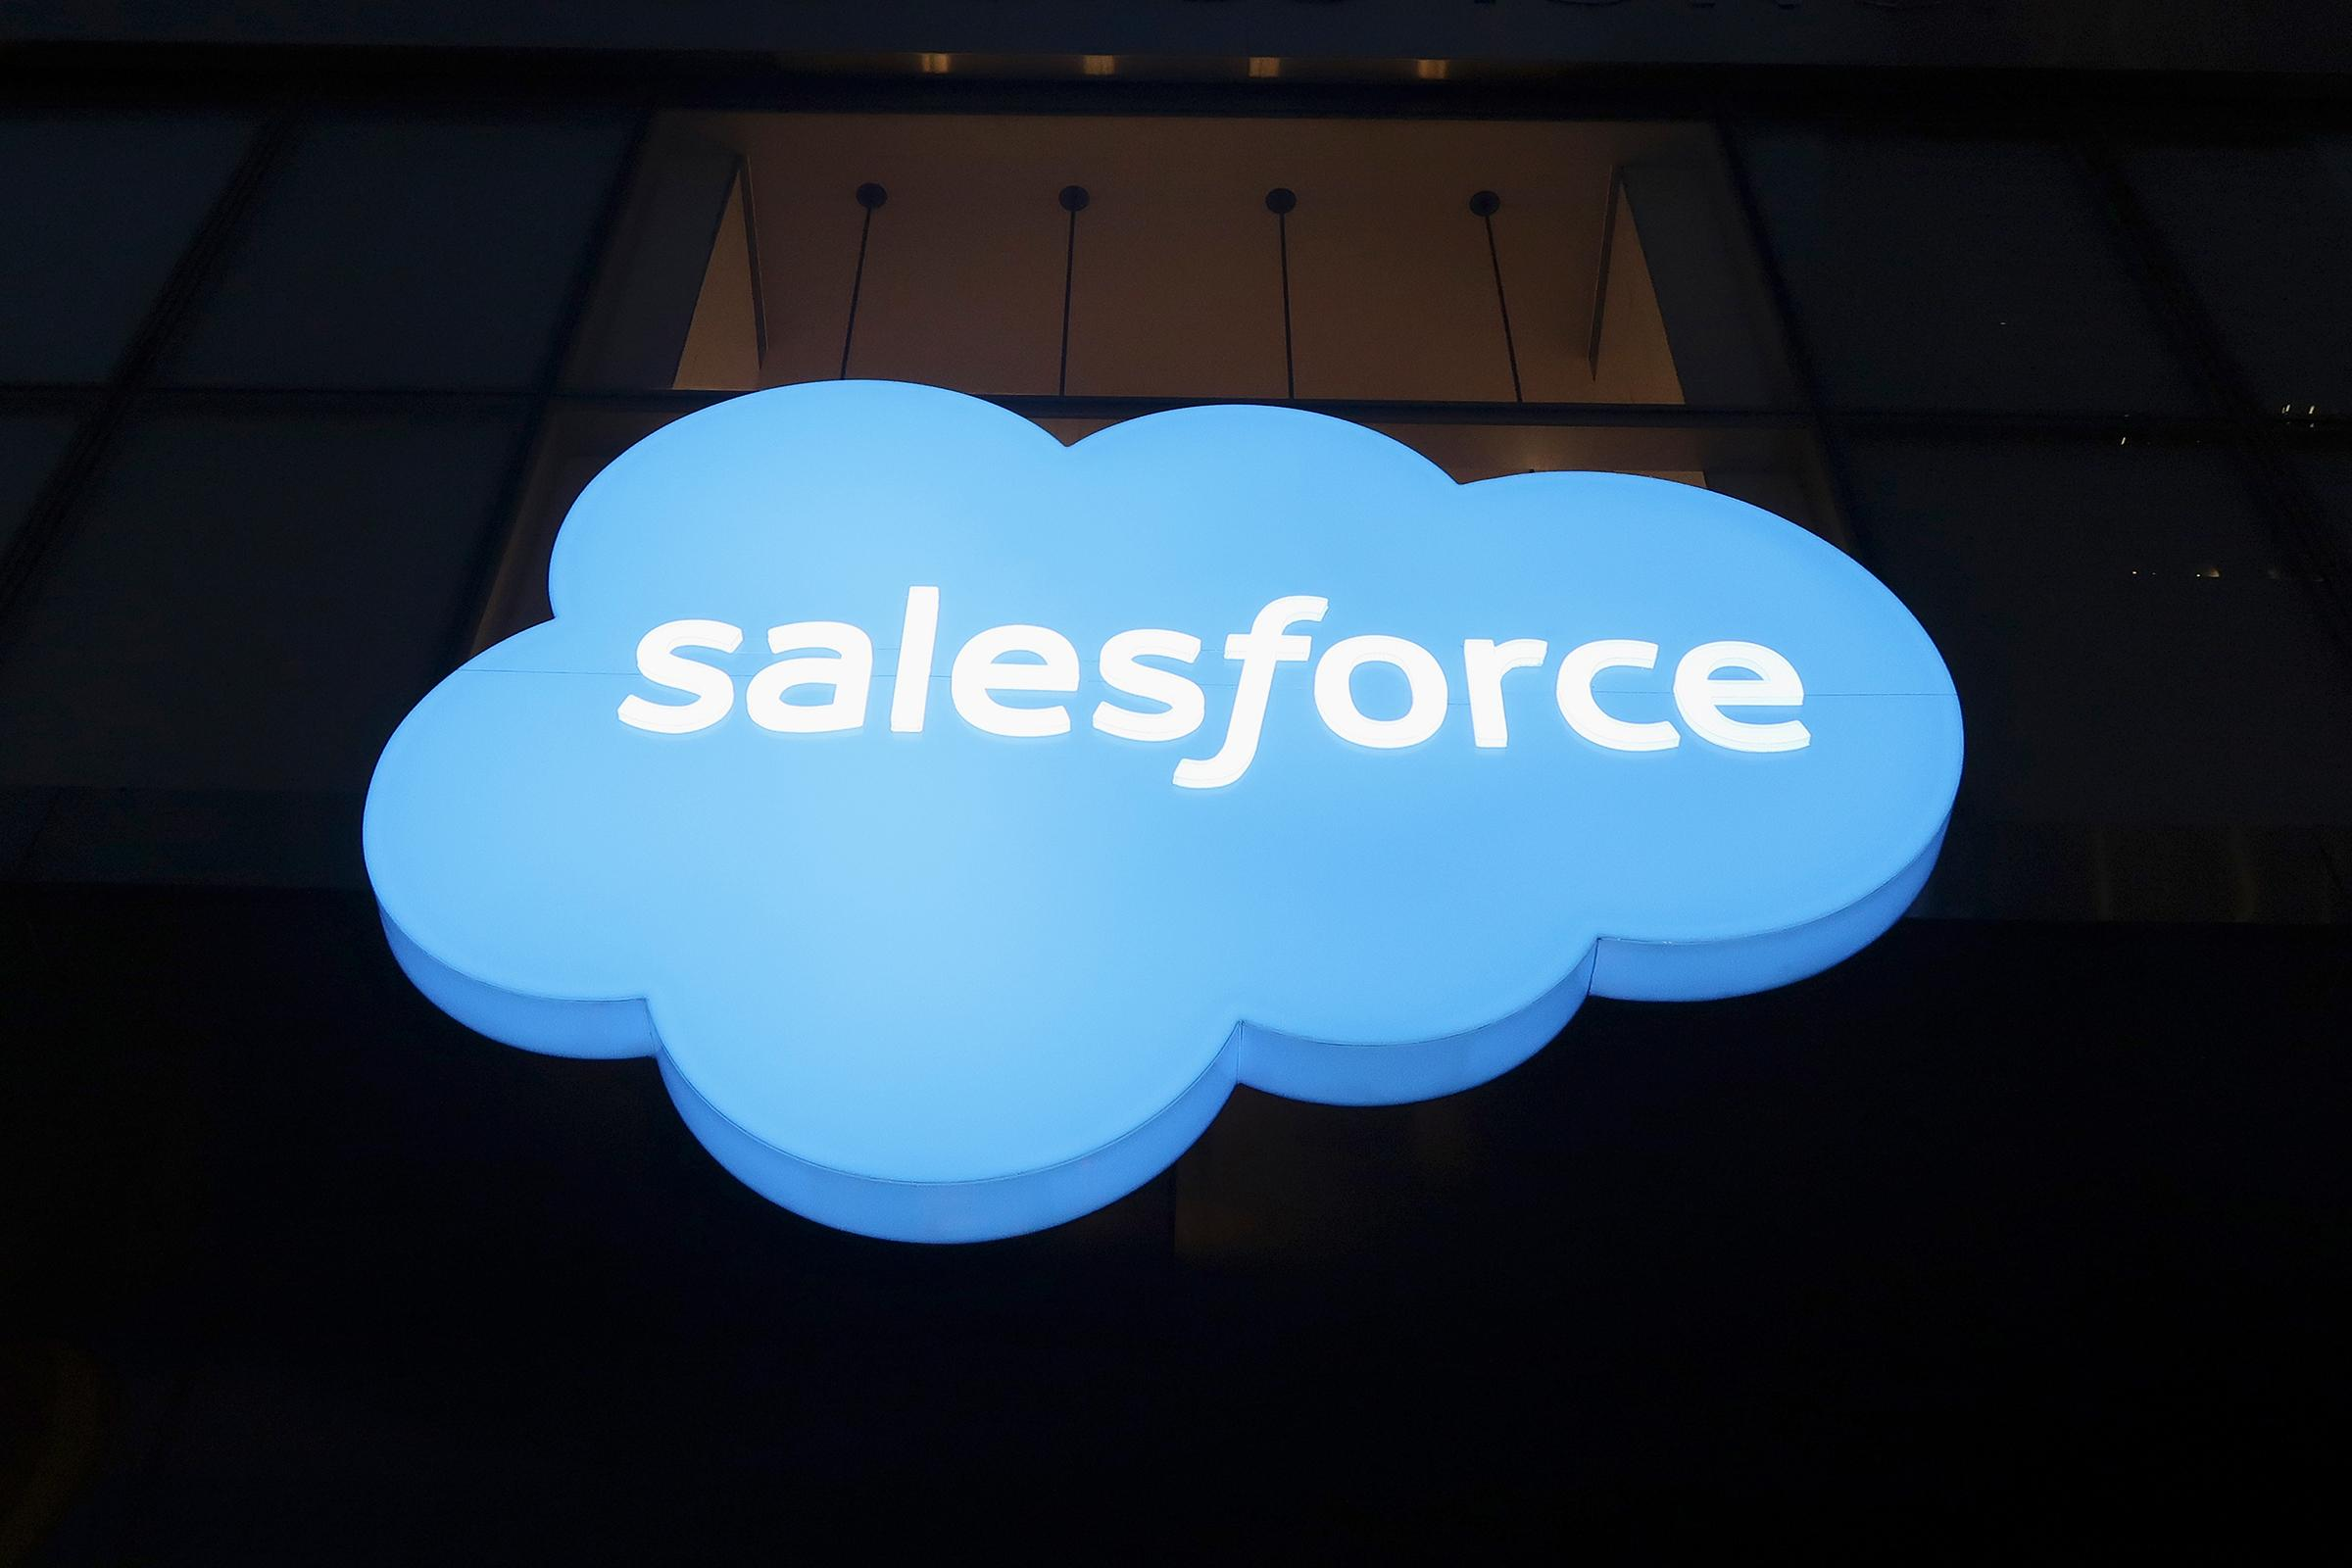 Salesforce.com Shows No Signs Of Slowing Down